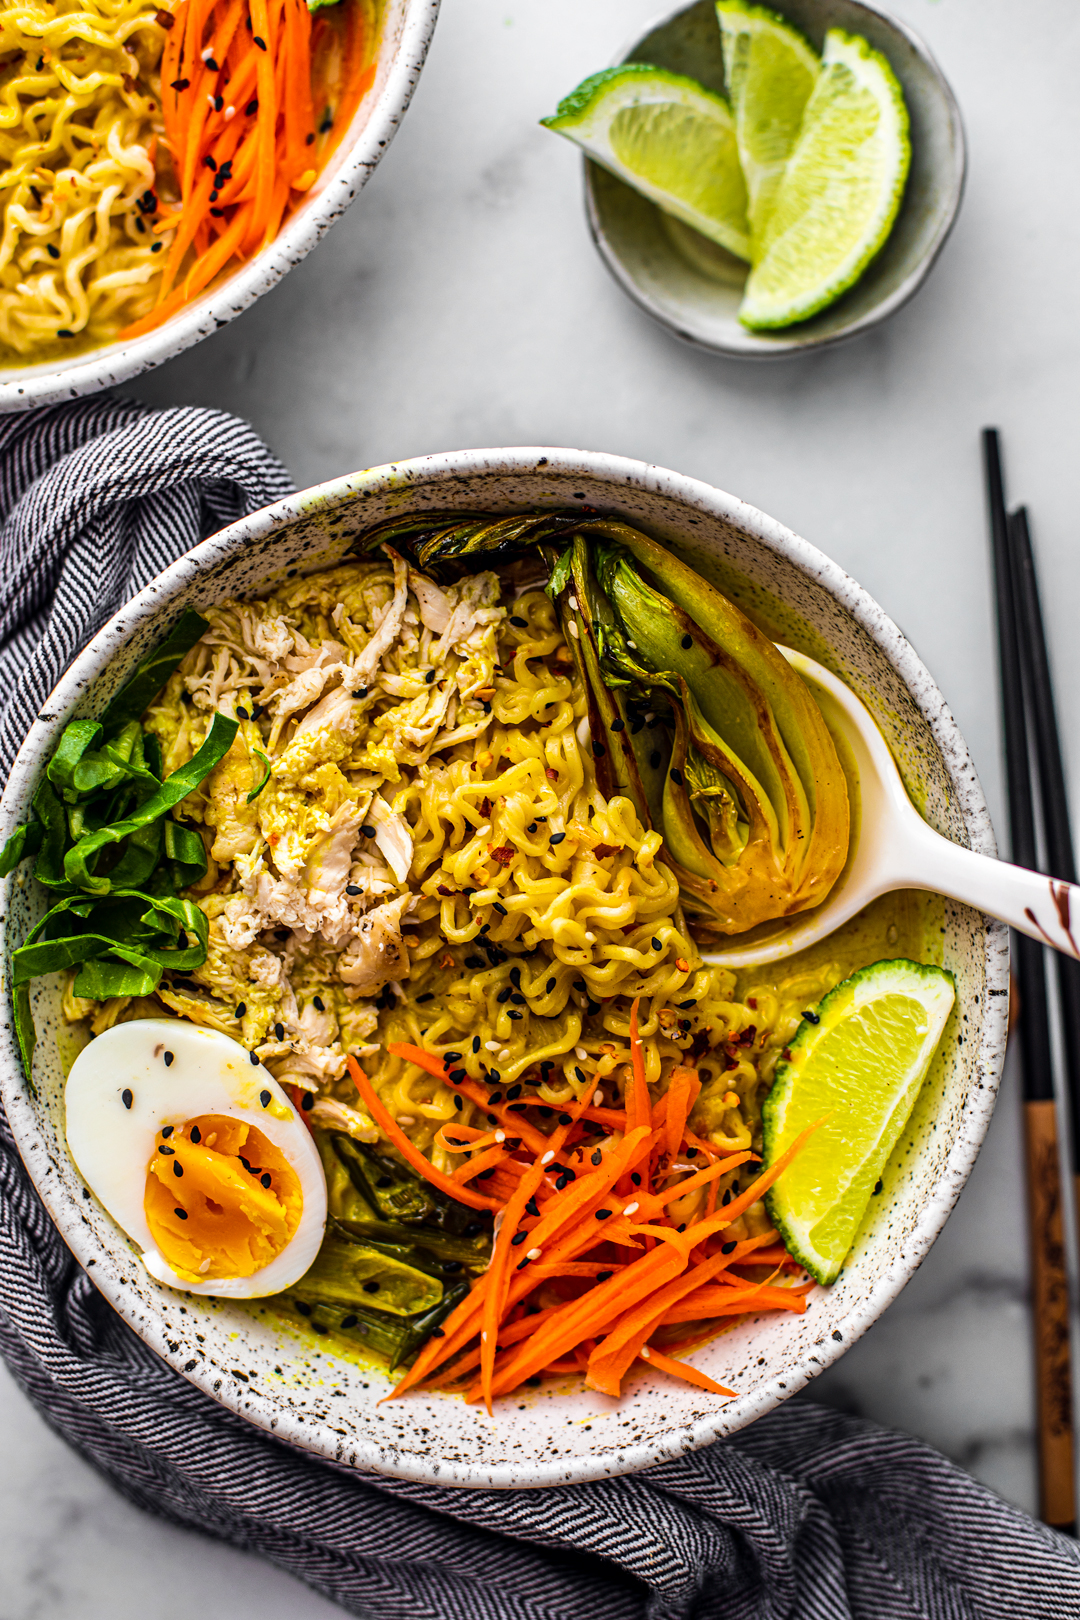 Overhead shot of bowl of chicken curry ramen soup with side of limes.